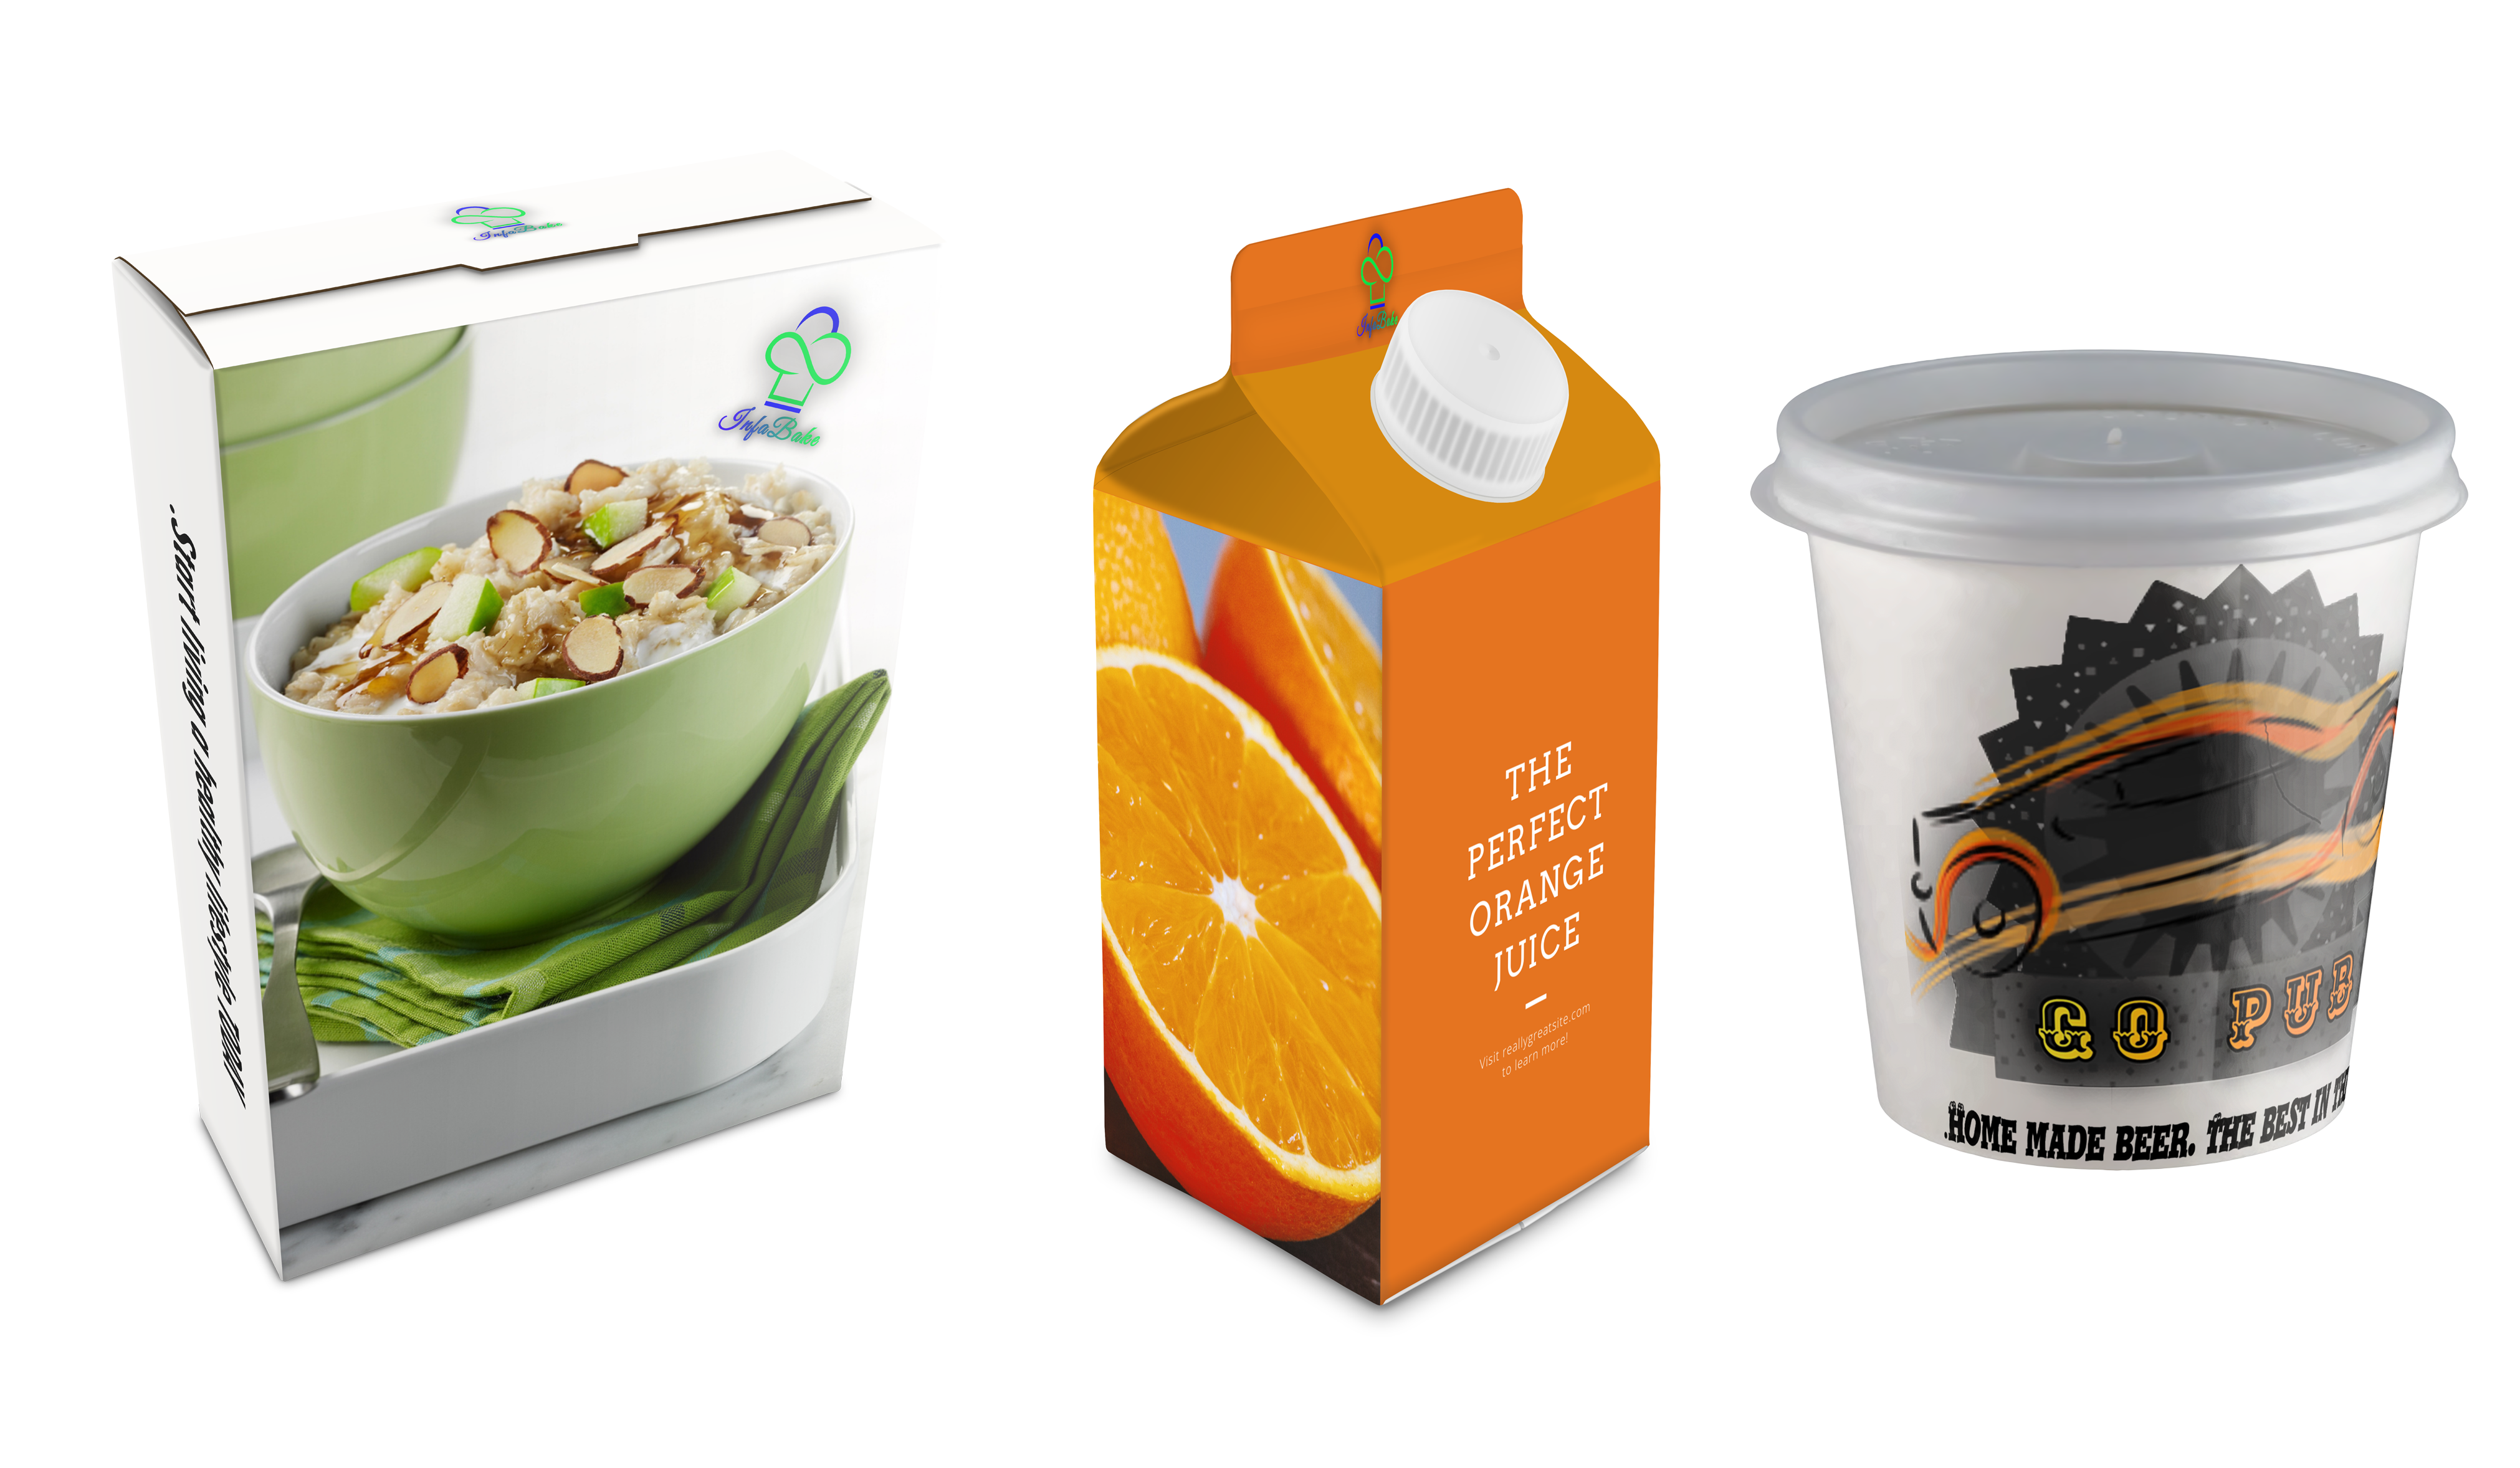 product mockup images